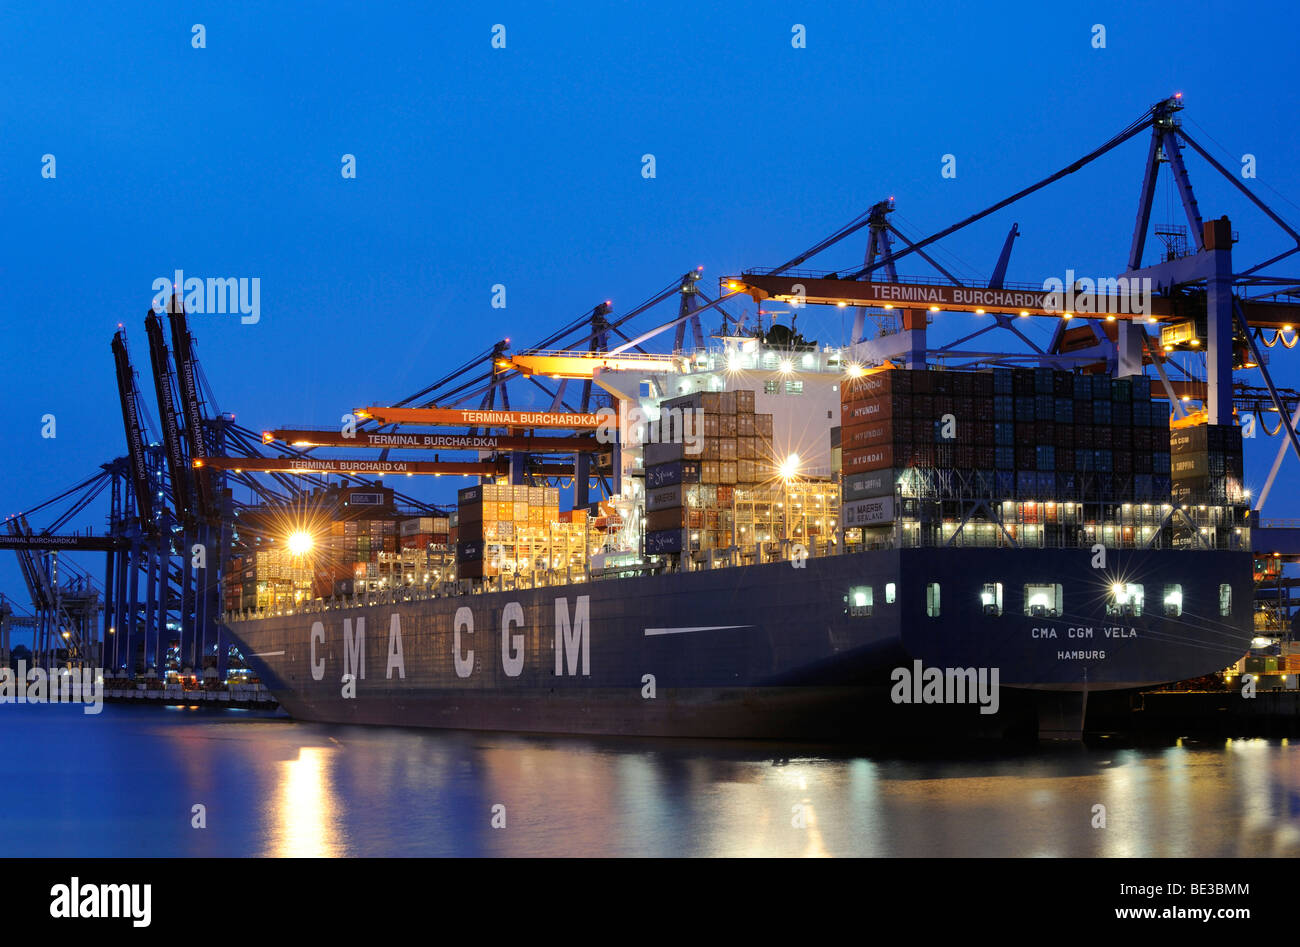 Container ship being loaded at the Burchardkai Terminal, Hamburg, Germany, Europe Stock Photo